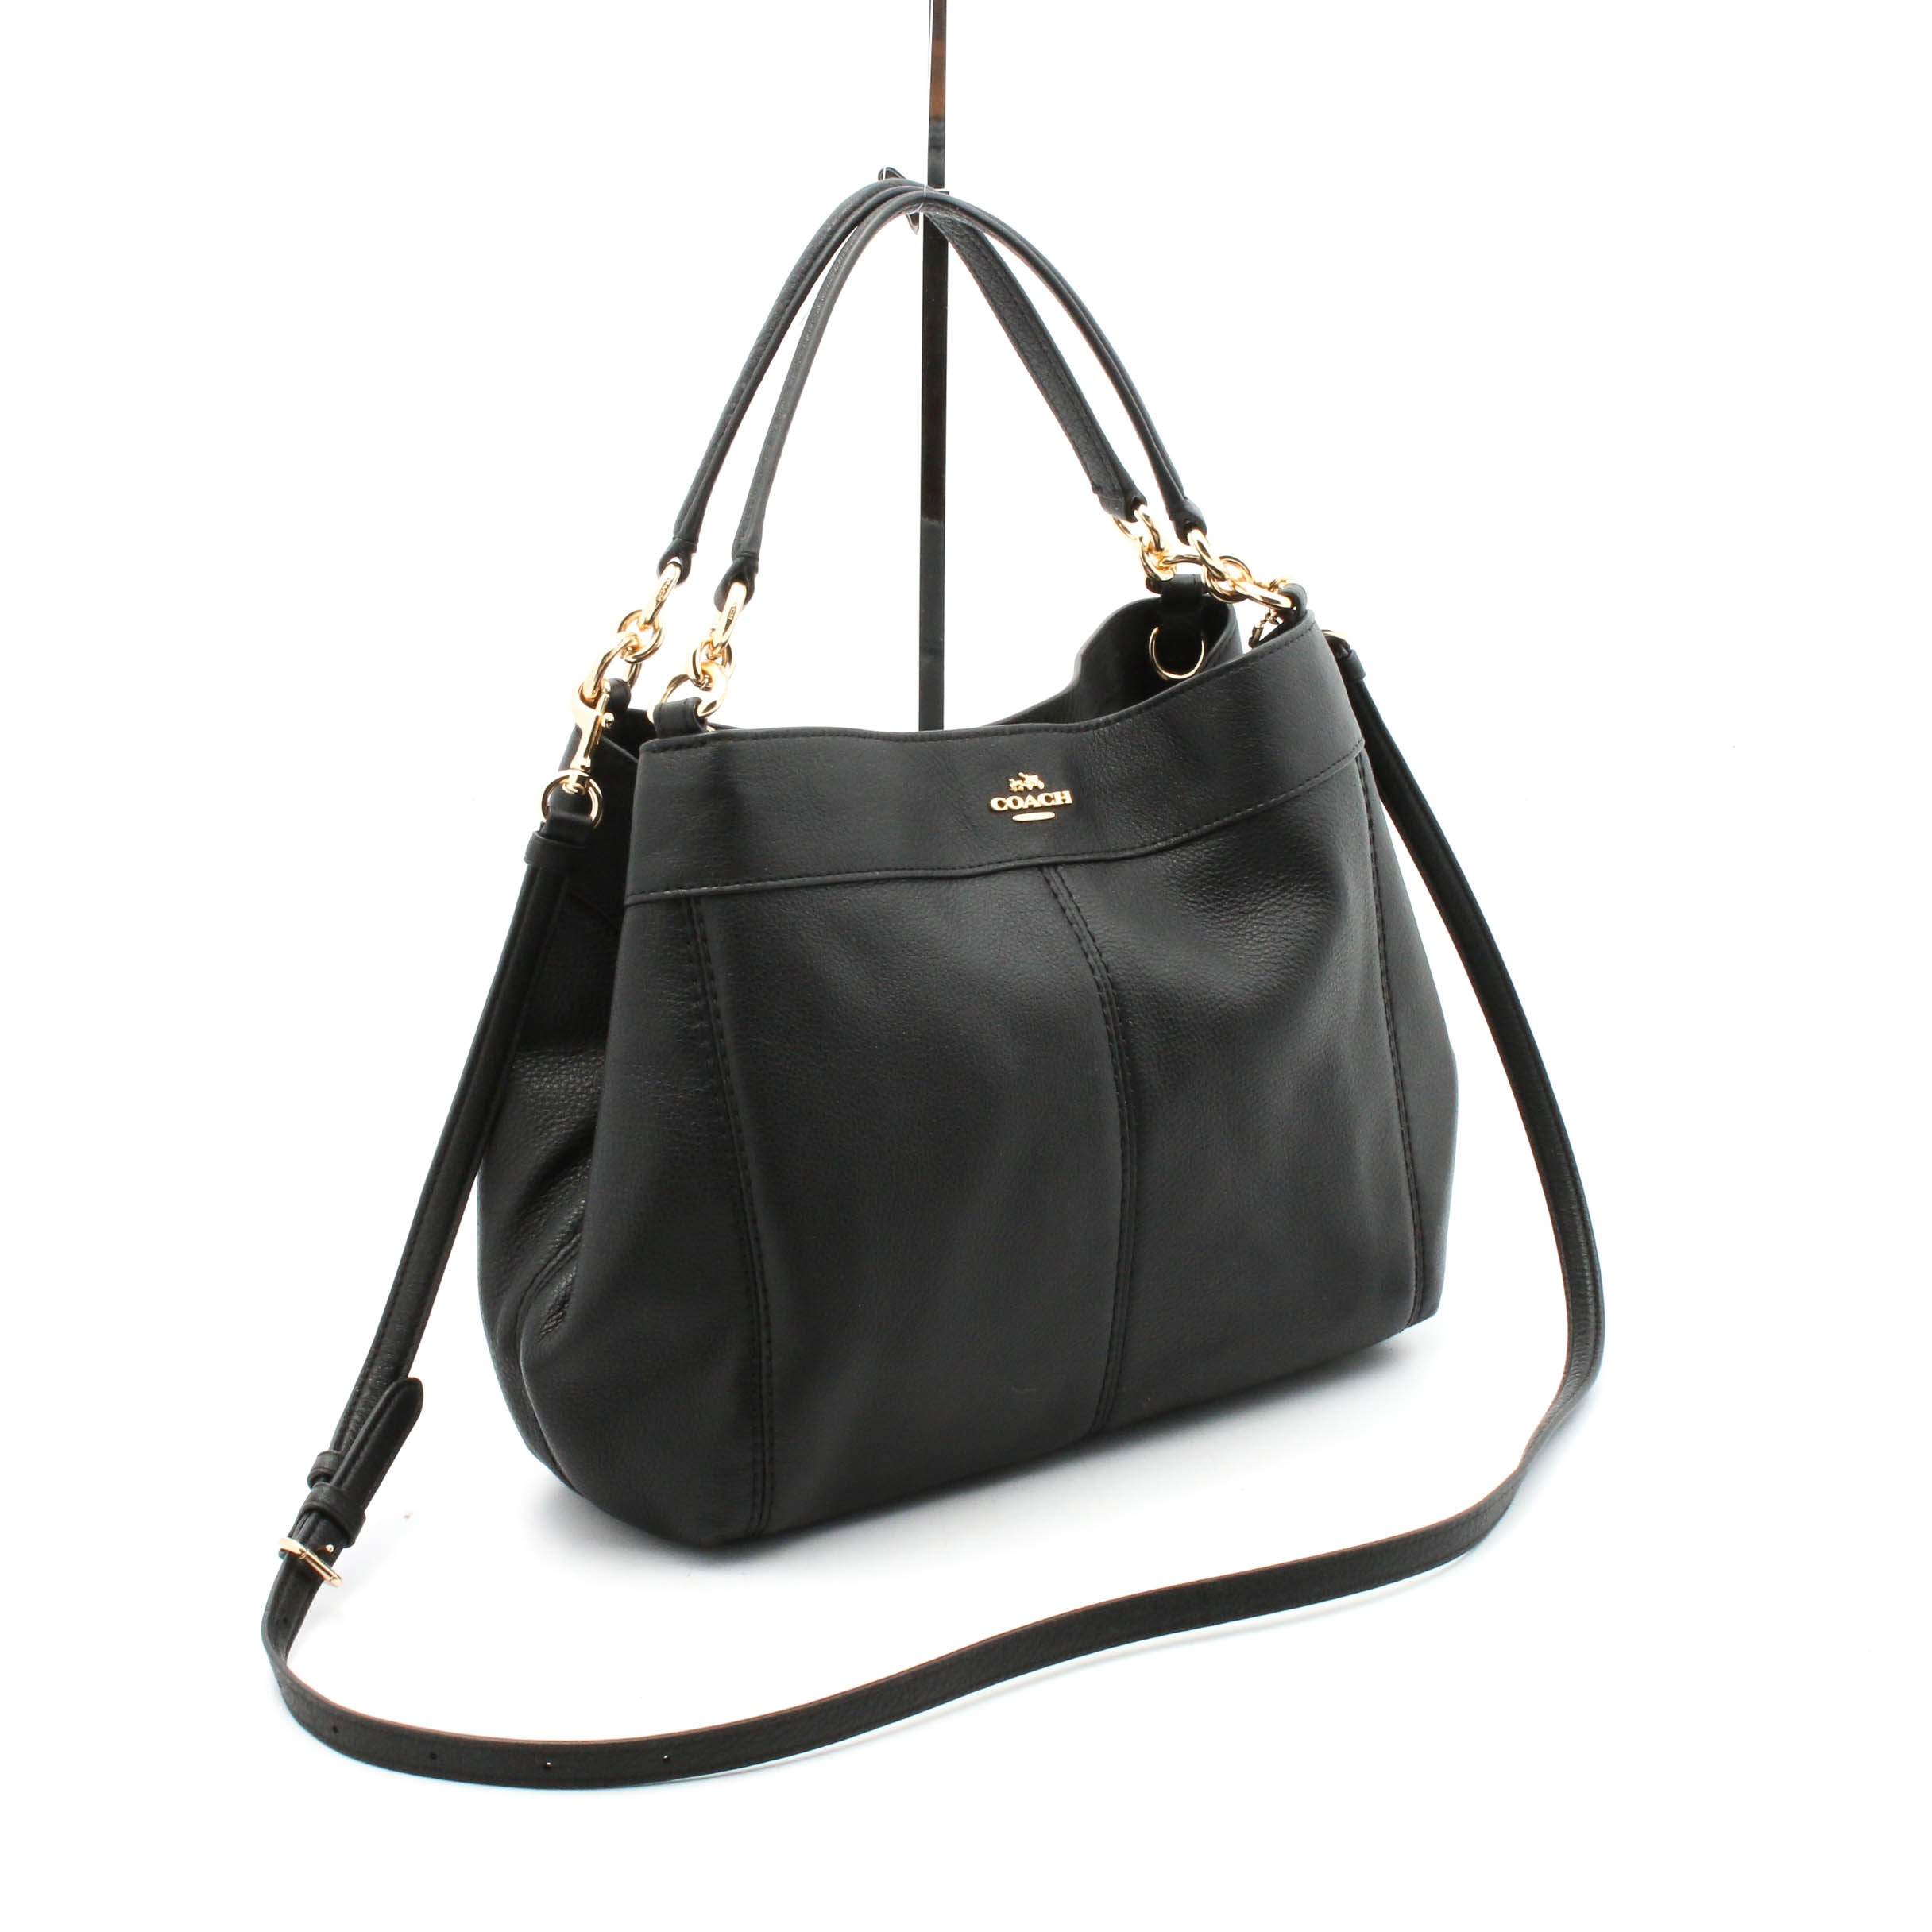 Coach Lexy Pebbled Leather Shoulder Bag